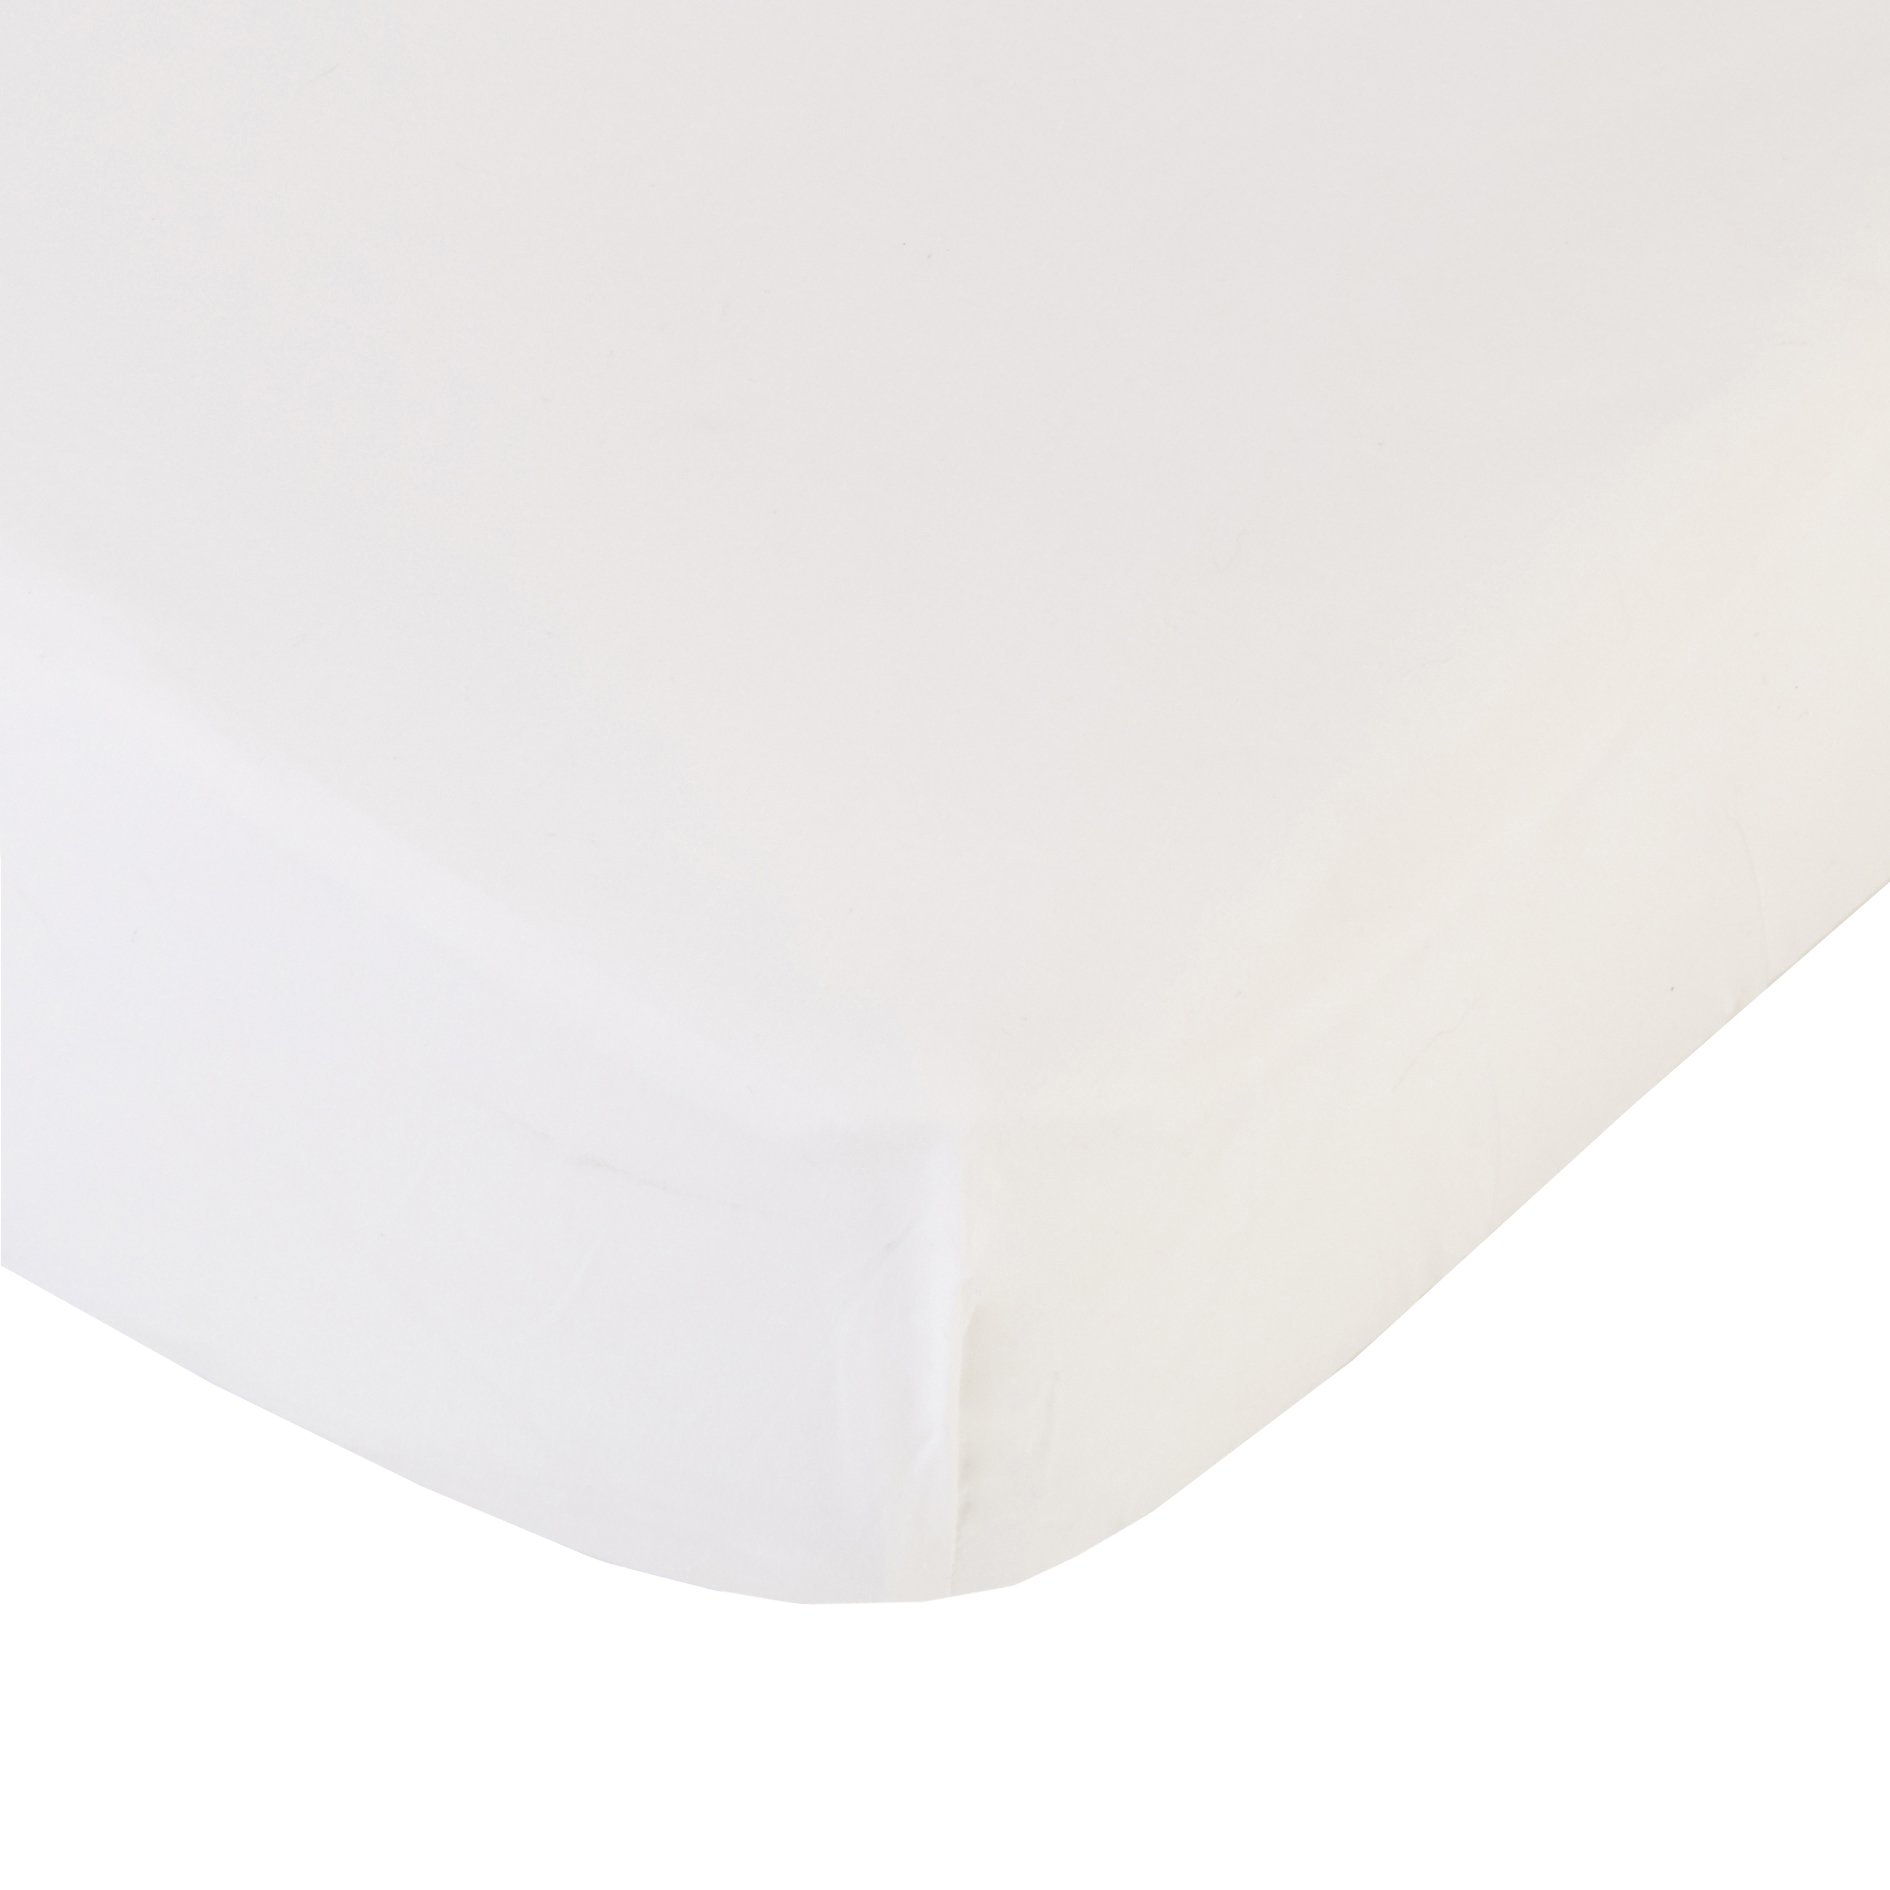 Coyuchi 220 TC Organic Percale Fitted Sheet, King, Alpine White by Coyuchi